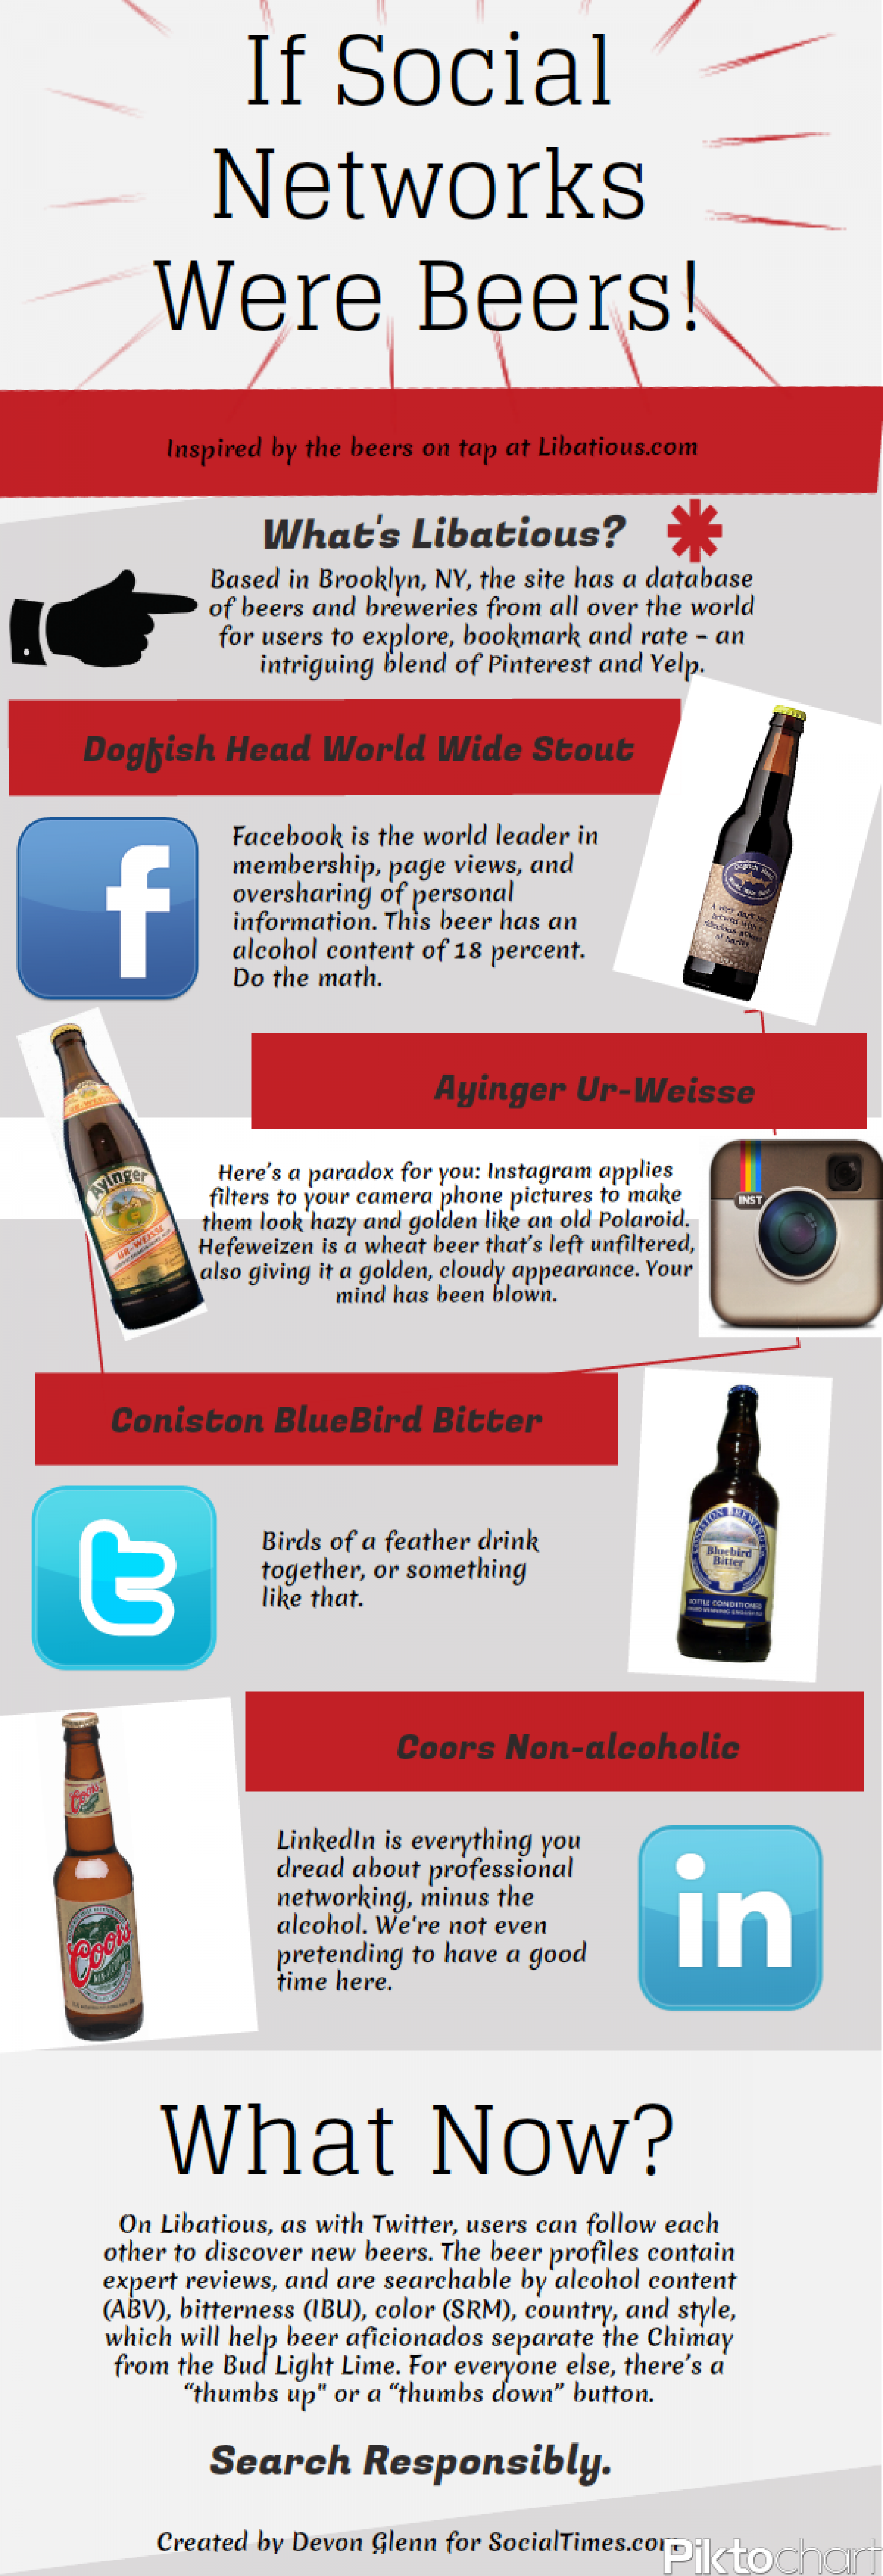 If Social Networks Were Beers Infographic